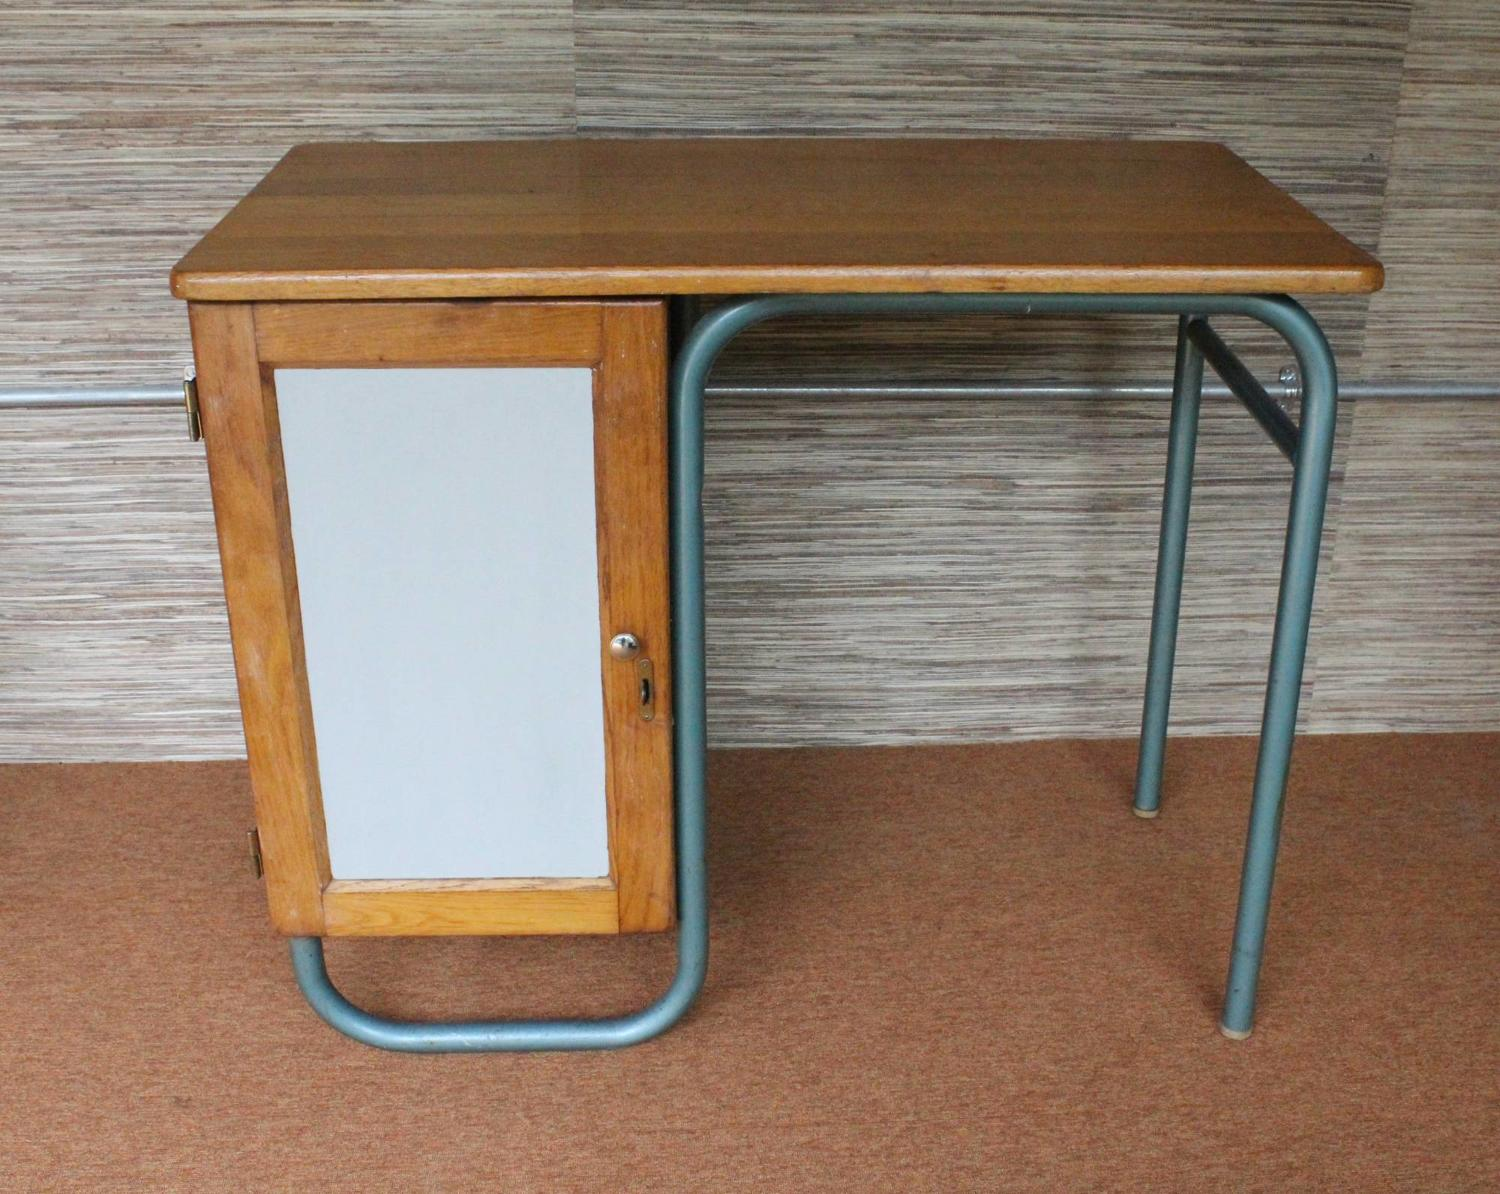 French Mid-Century Tubular Metal Desk